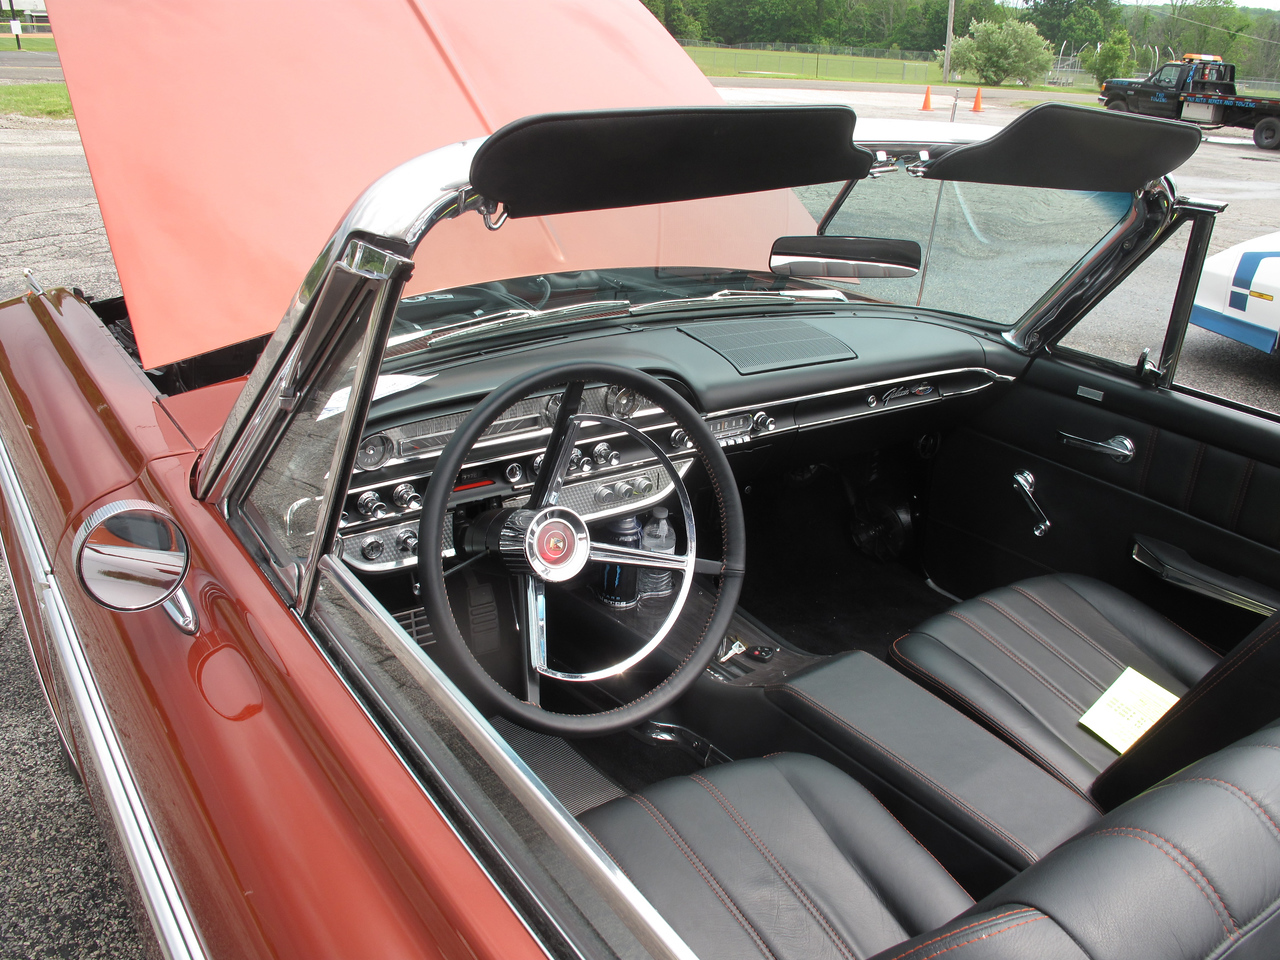 BOB FINNAN / GAZETTE The 1962 Ford Galaxie Coyote's interior was pristine. It was on display at the Cloverleaf High School bowling team's car show Sunday.